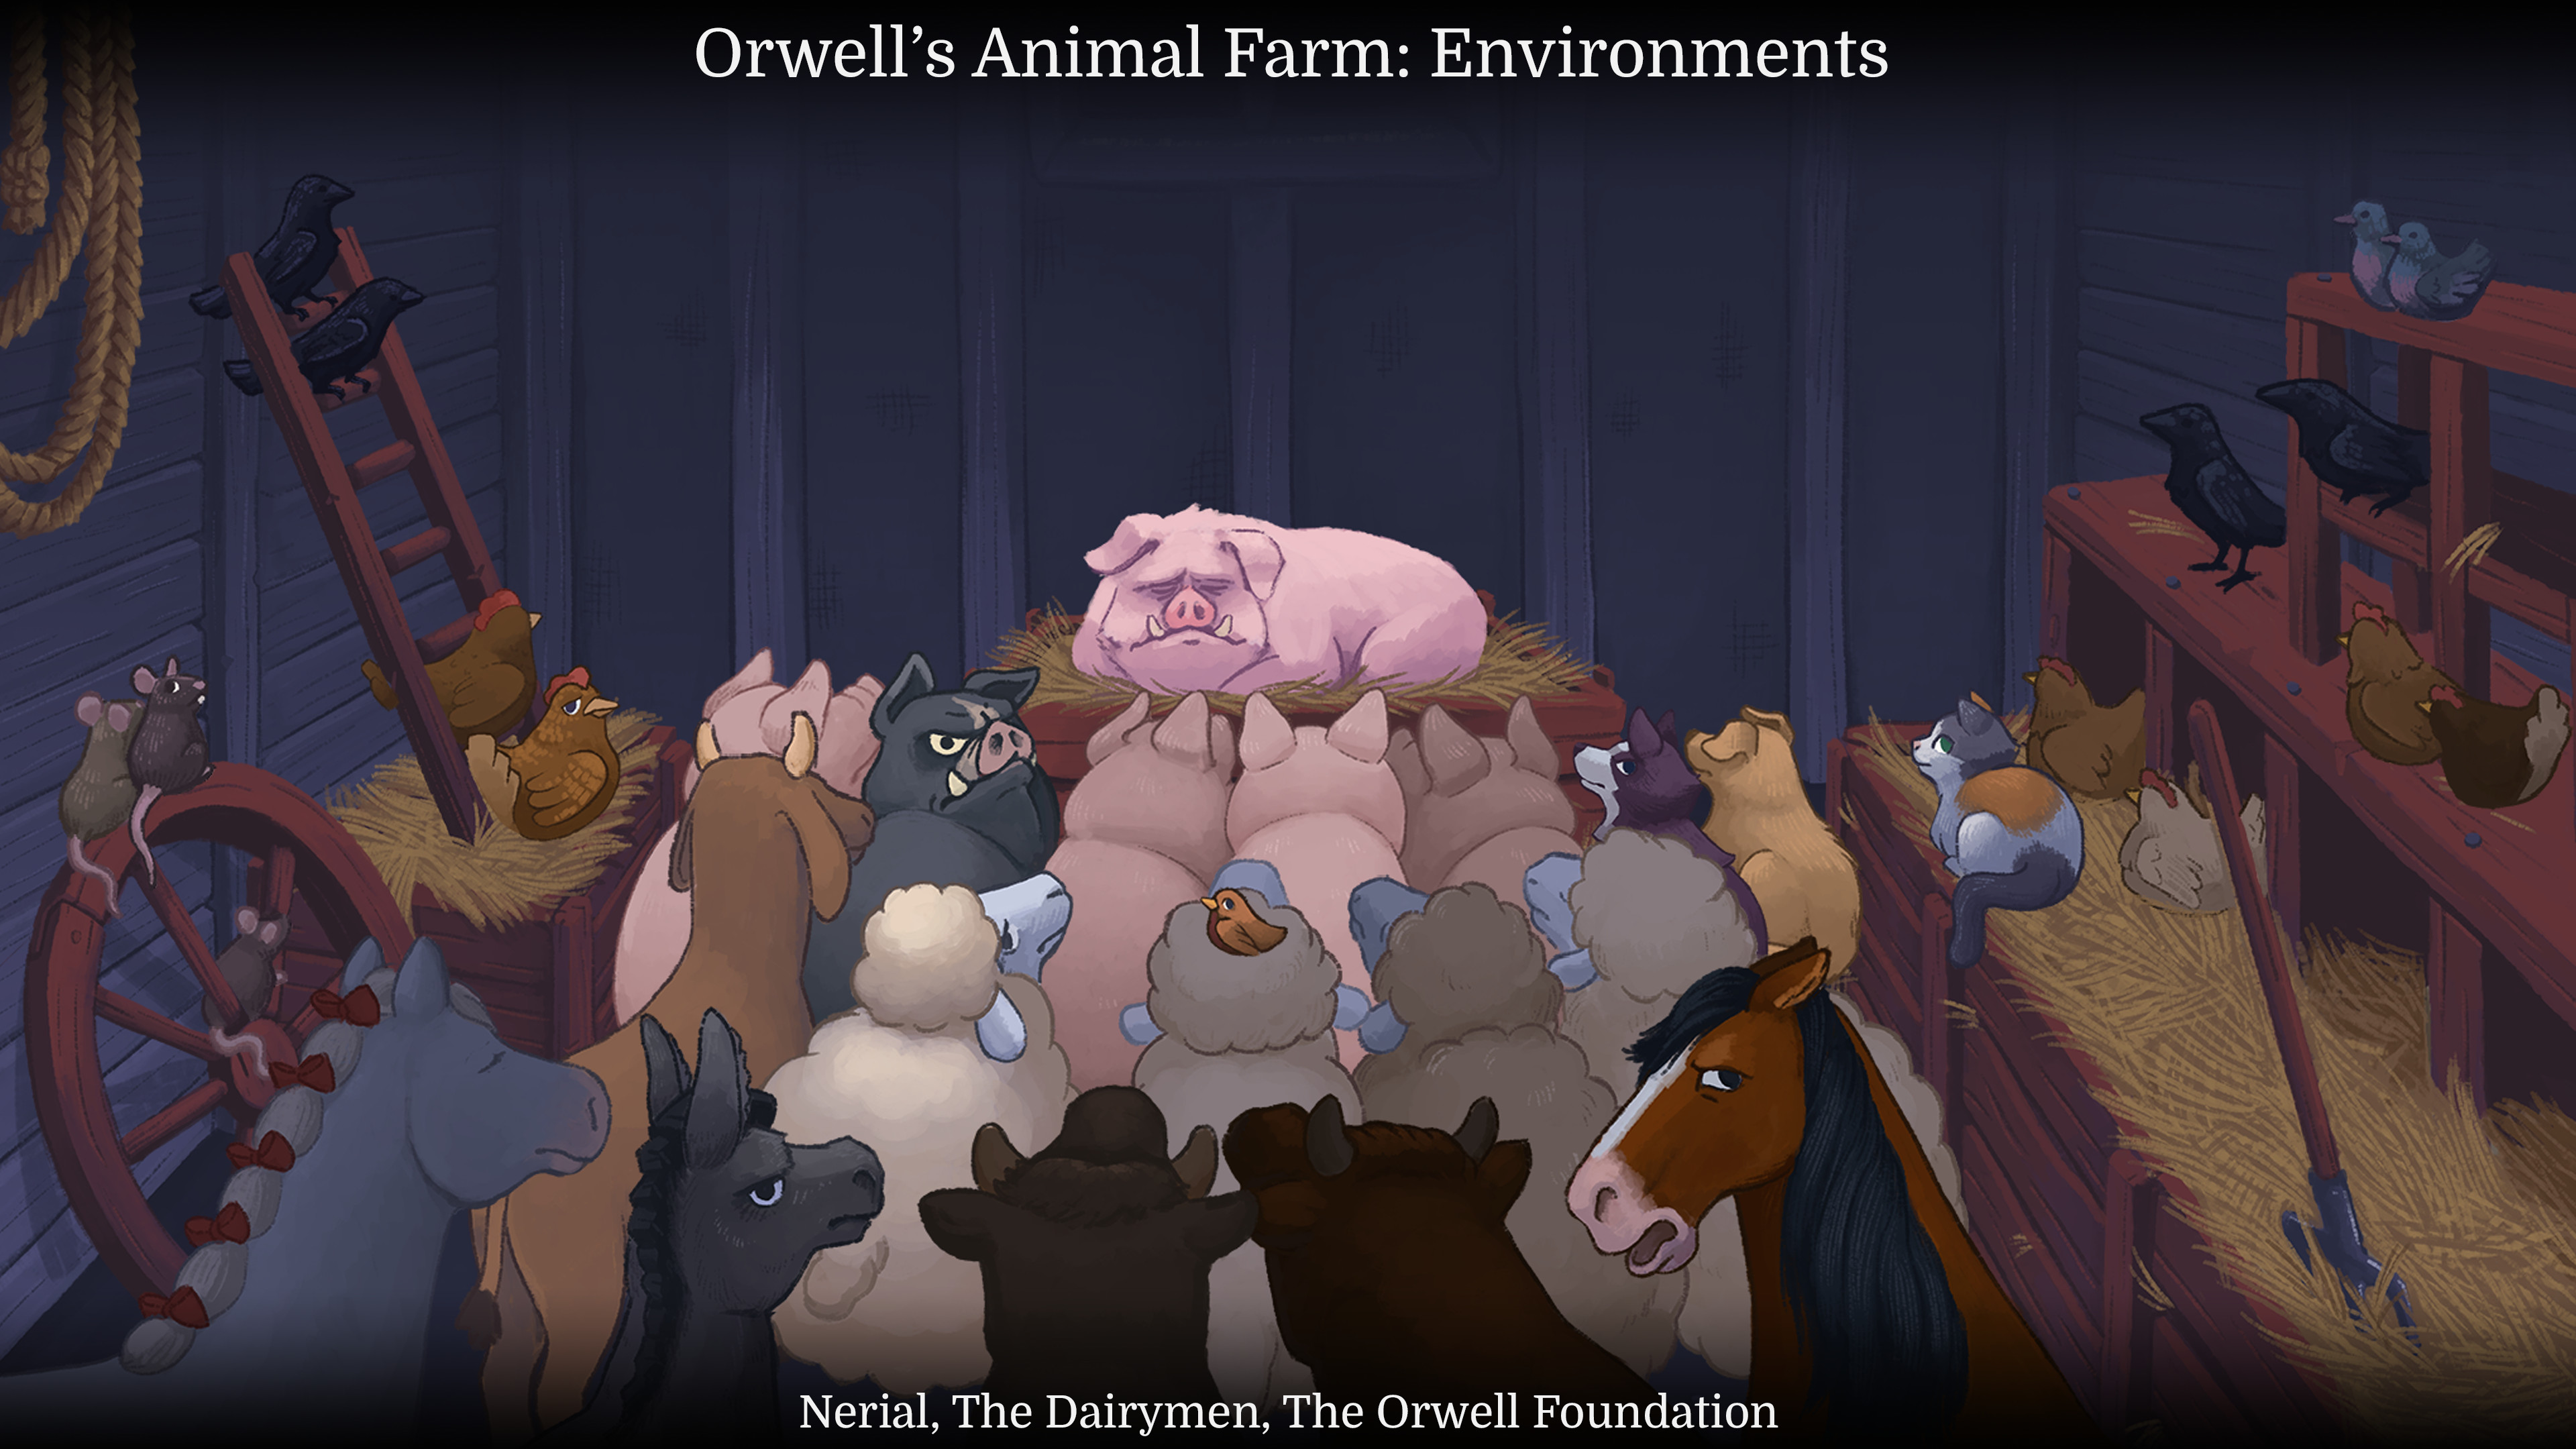 The barn meeting scene. Certain animals could be hovered over and selected for dialogue options.